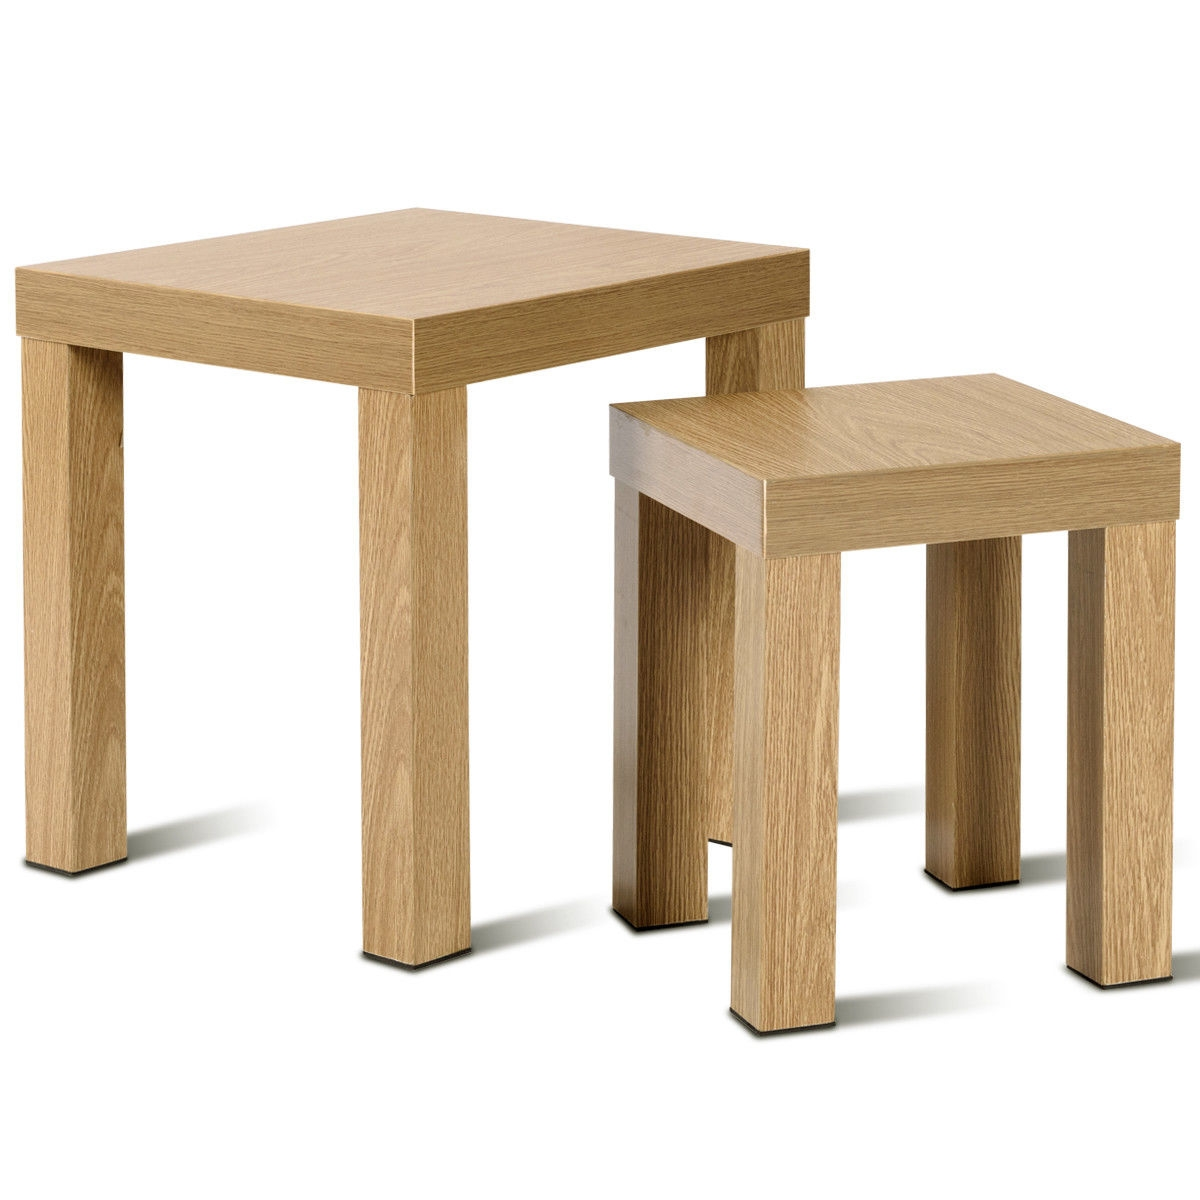 Set of 2 Nesting Living Room Decor Wooden Coffee End Table